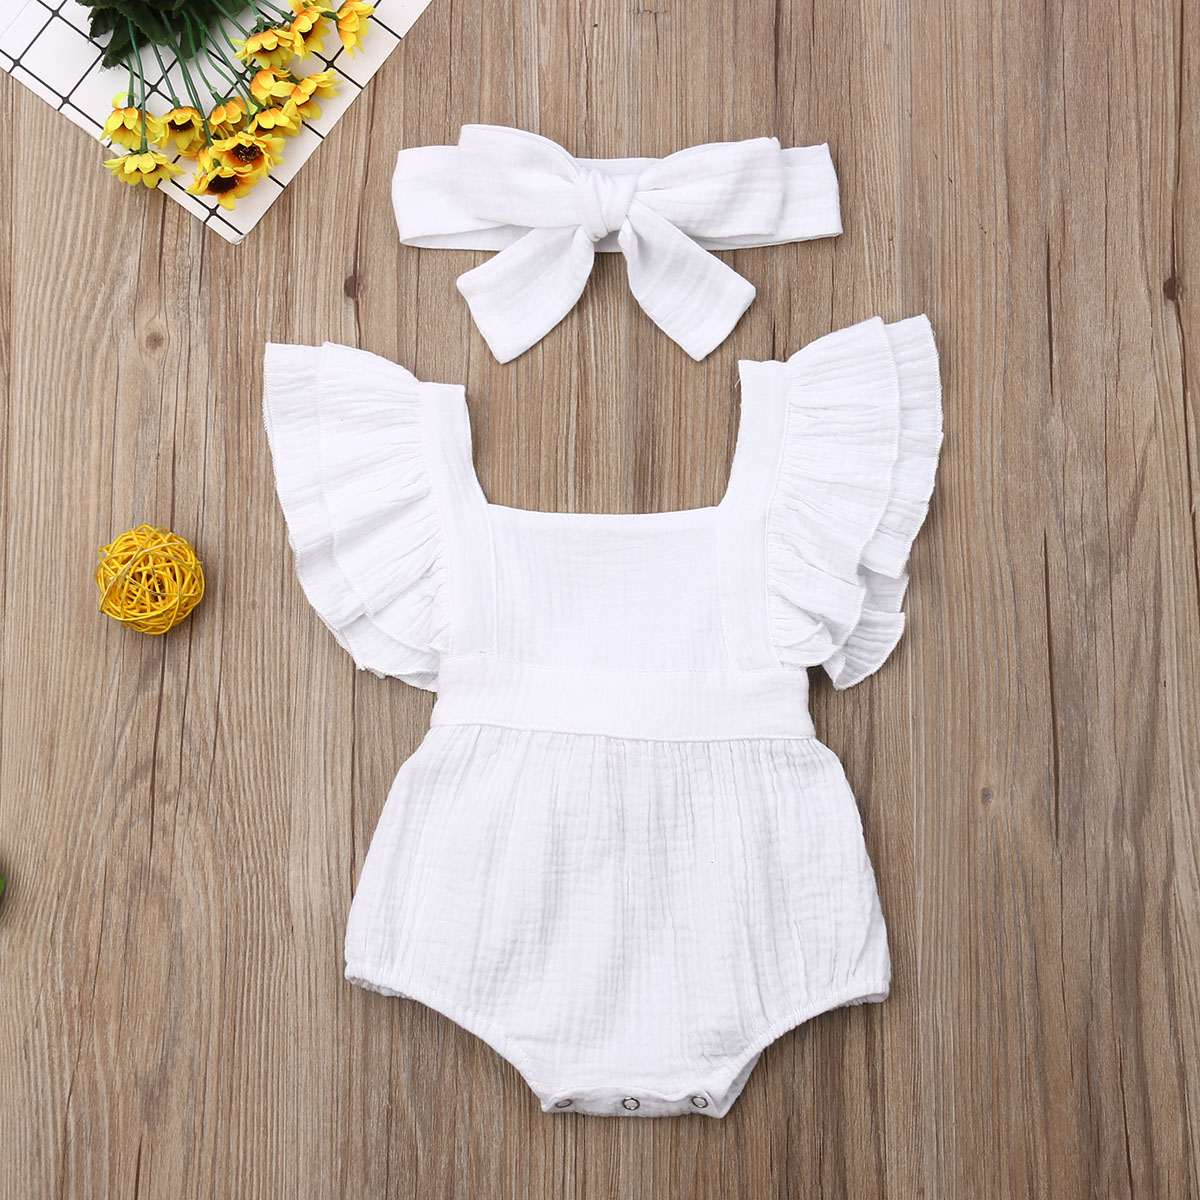 Pudcoco Newest Fashion Newborn Baby Girl Clothes Solid Color Sleeveless Cotton Romper Jumpsuit Headband 2Pcs Outfits Clothes